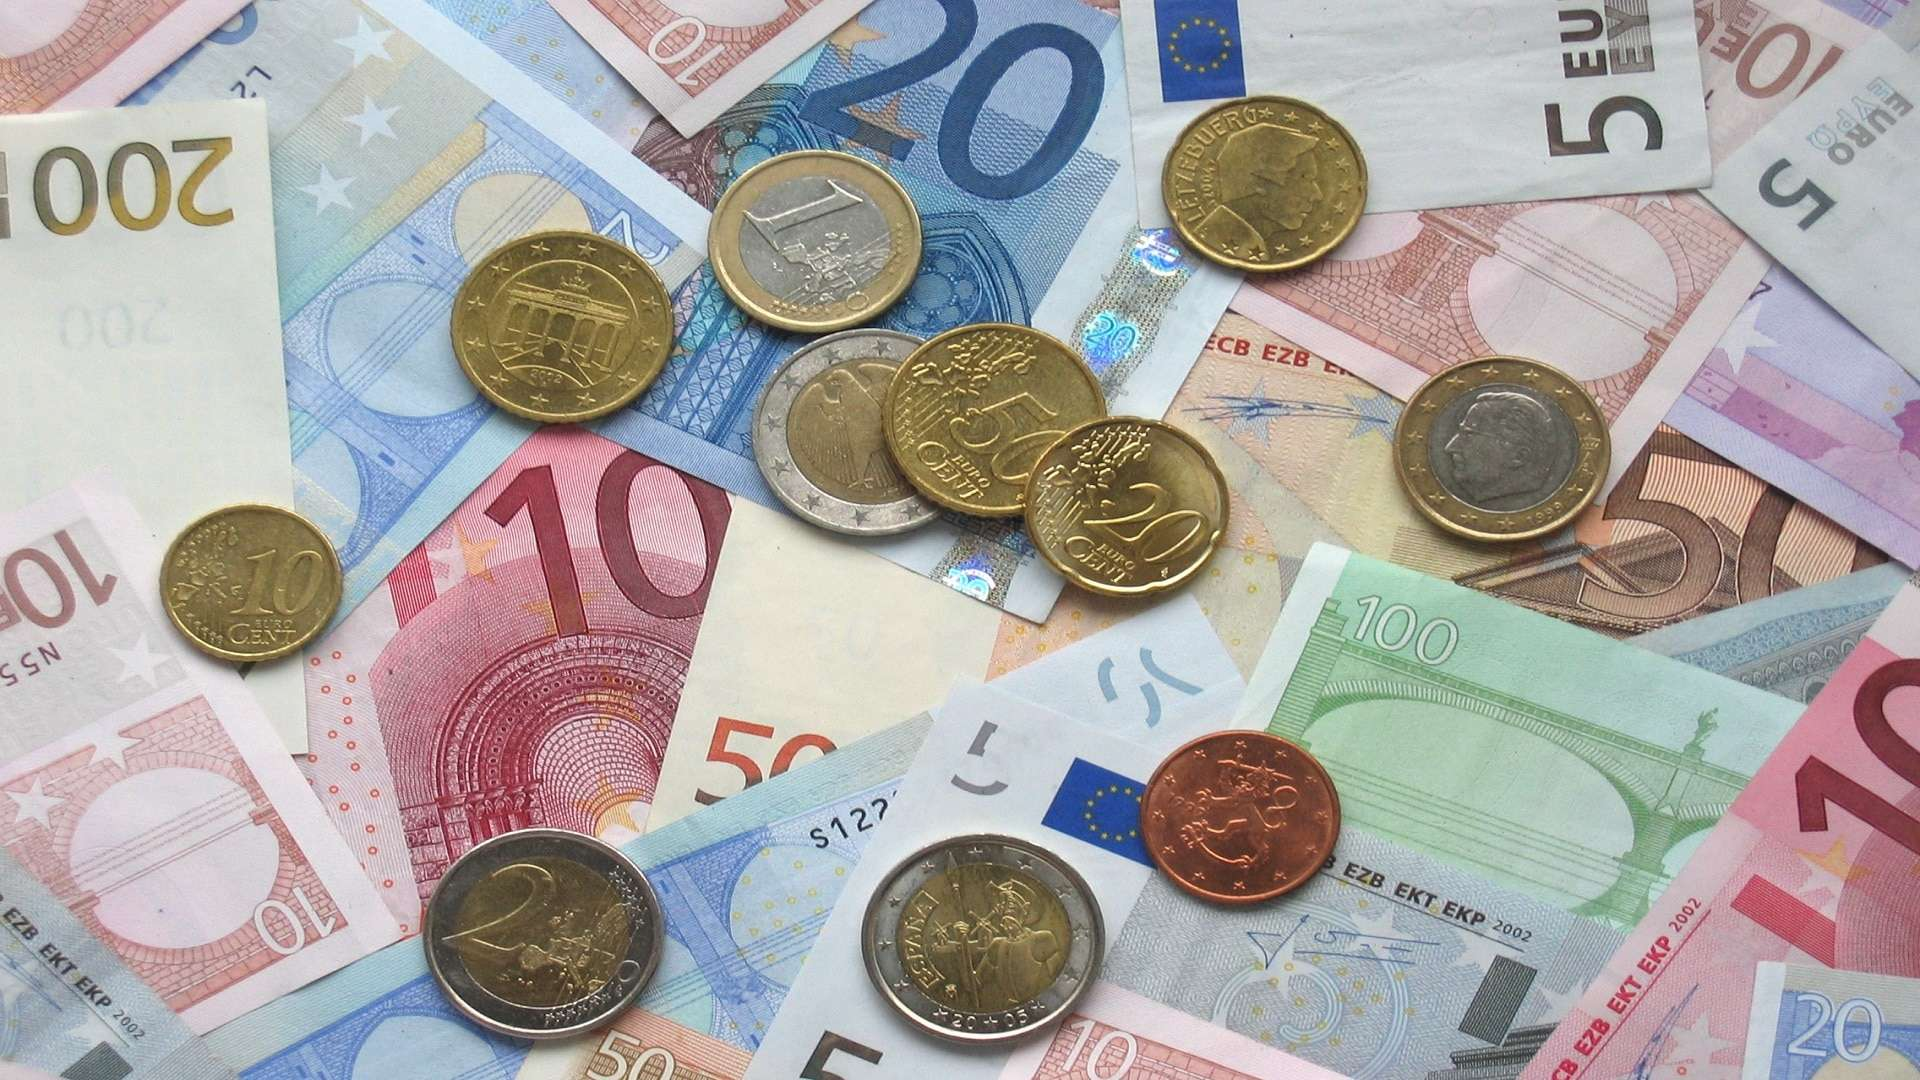 Canva - Banknotes and Coins